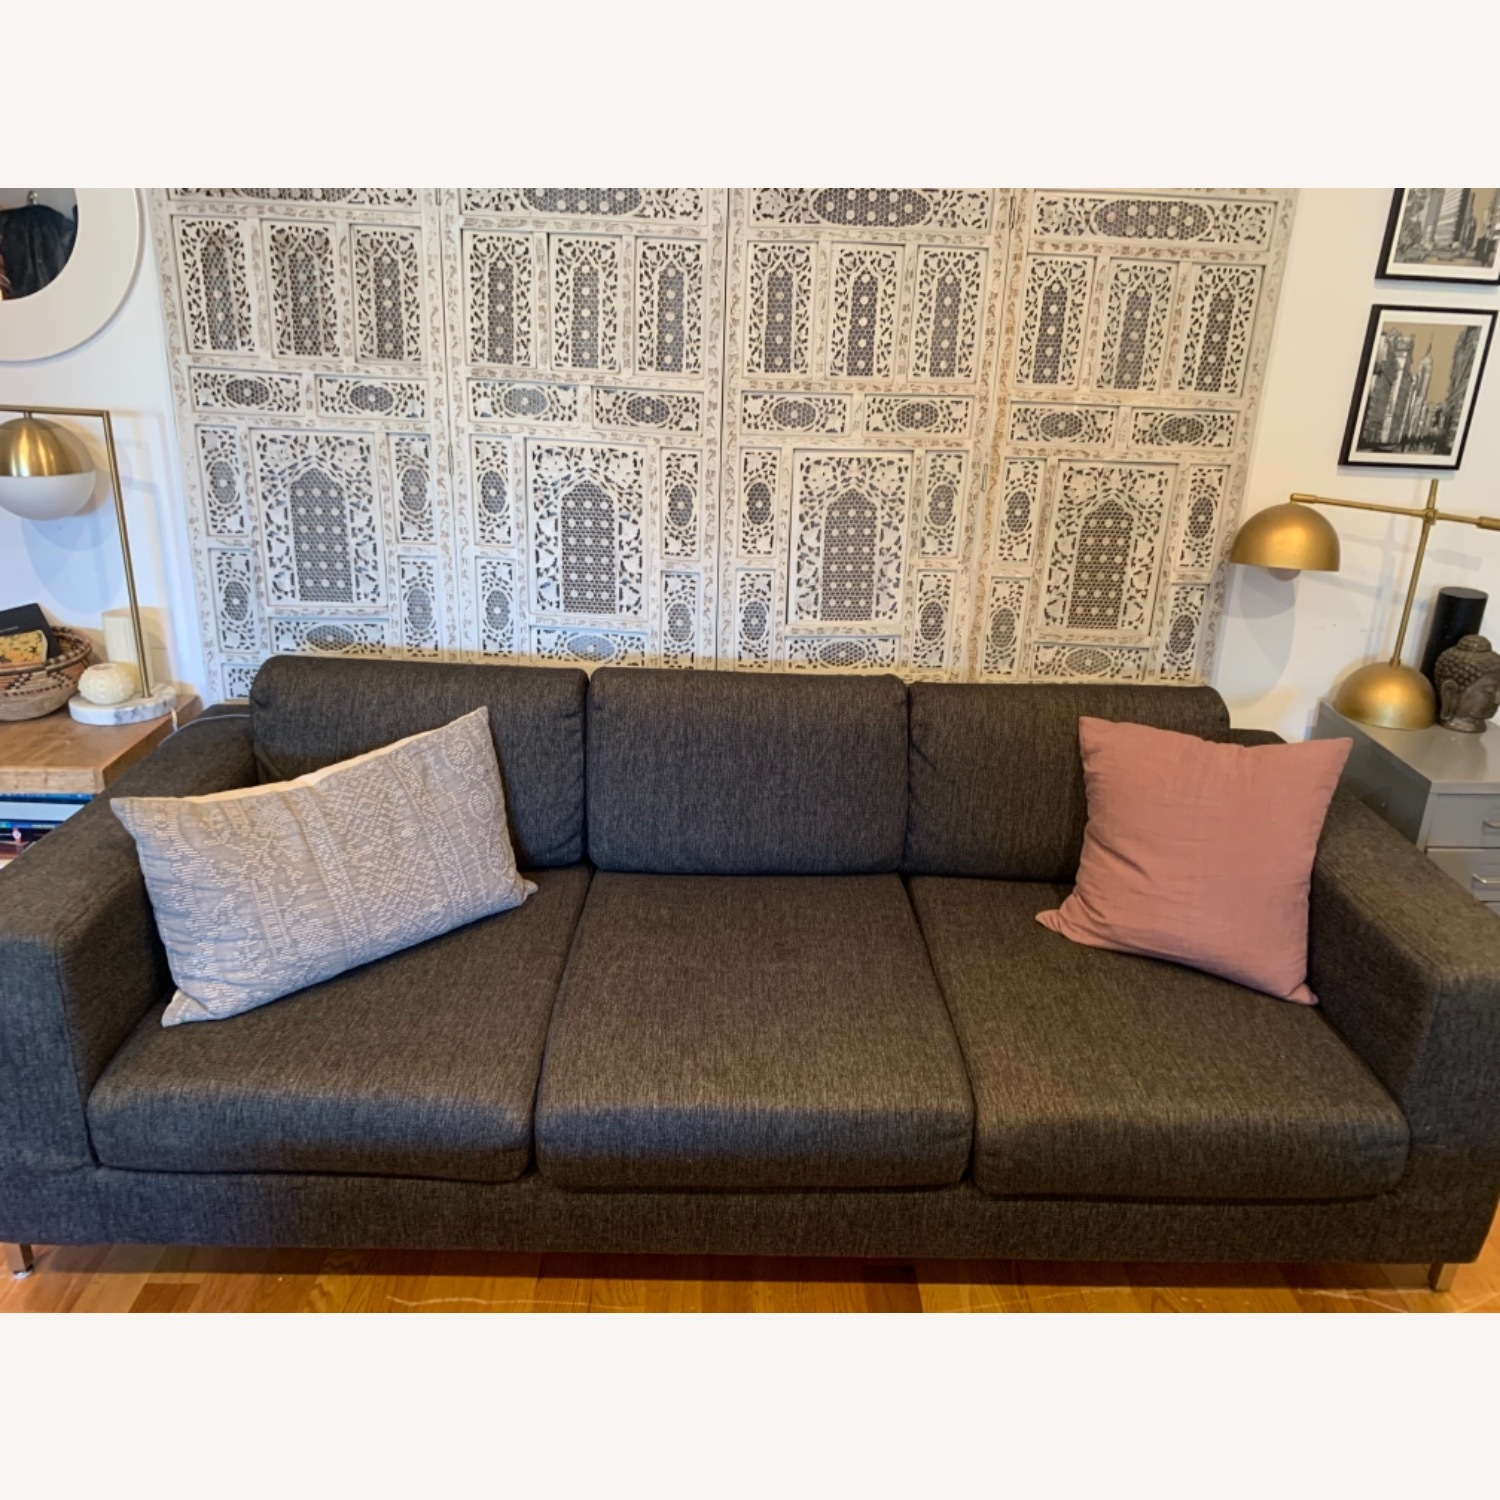 Gus Modern Gray Couch - image-2